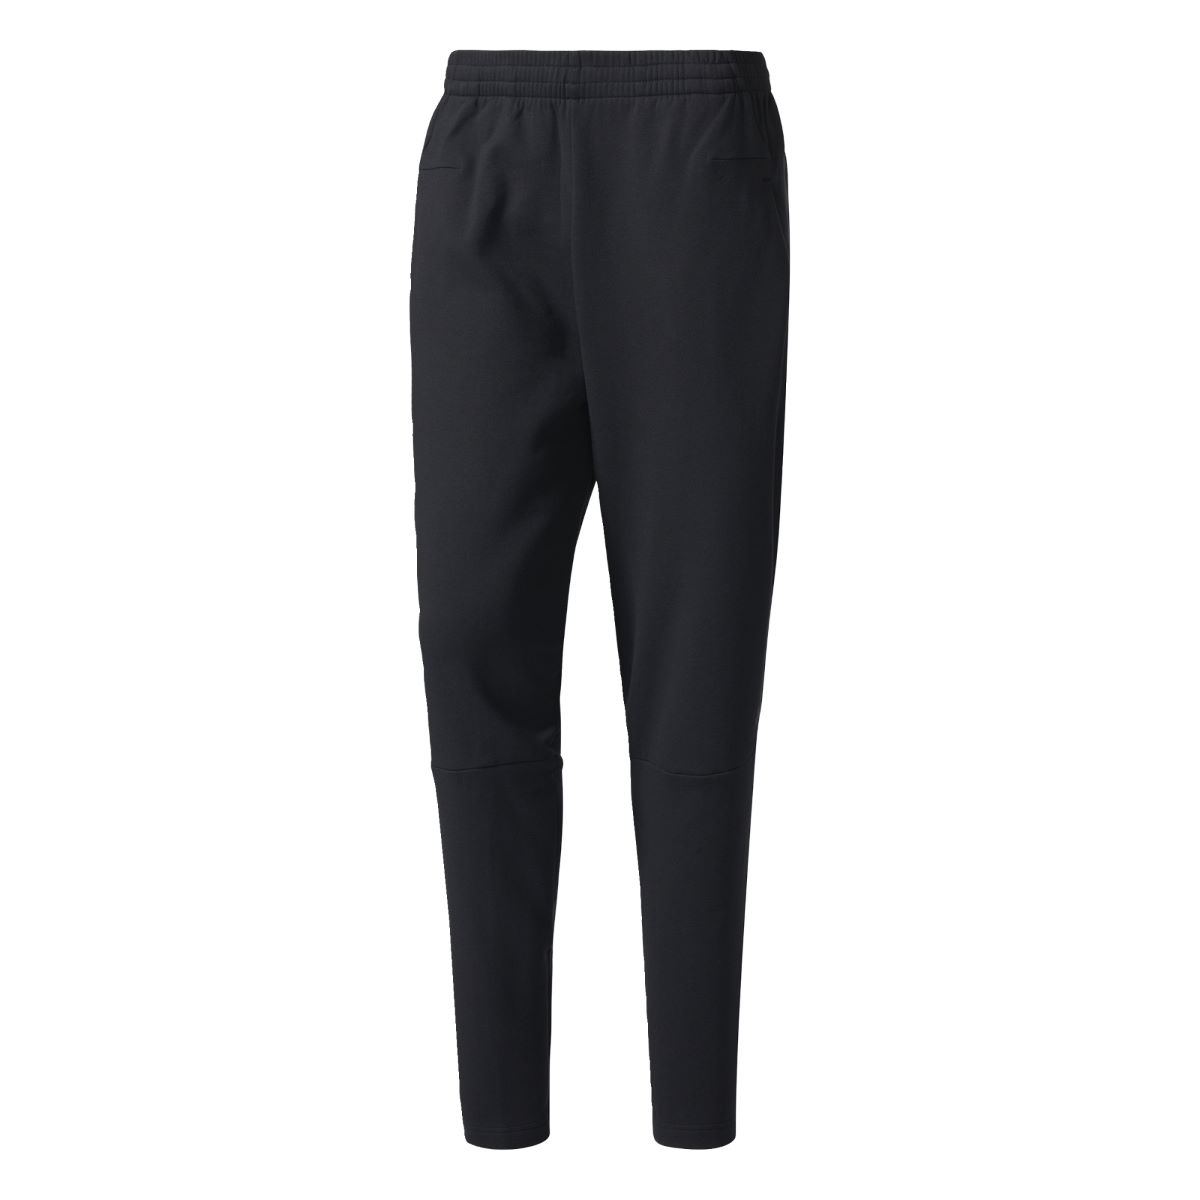 Pantalon adidas ZNE 2 - M BLACK Collants de running